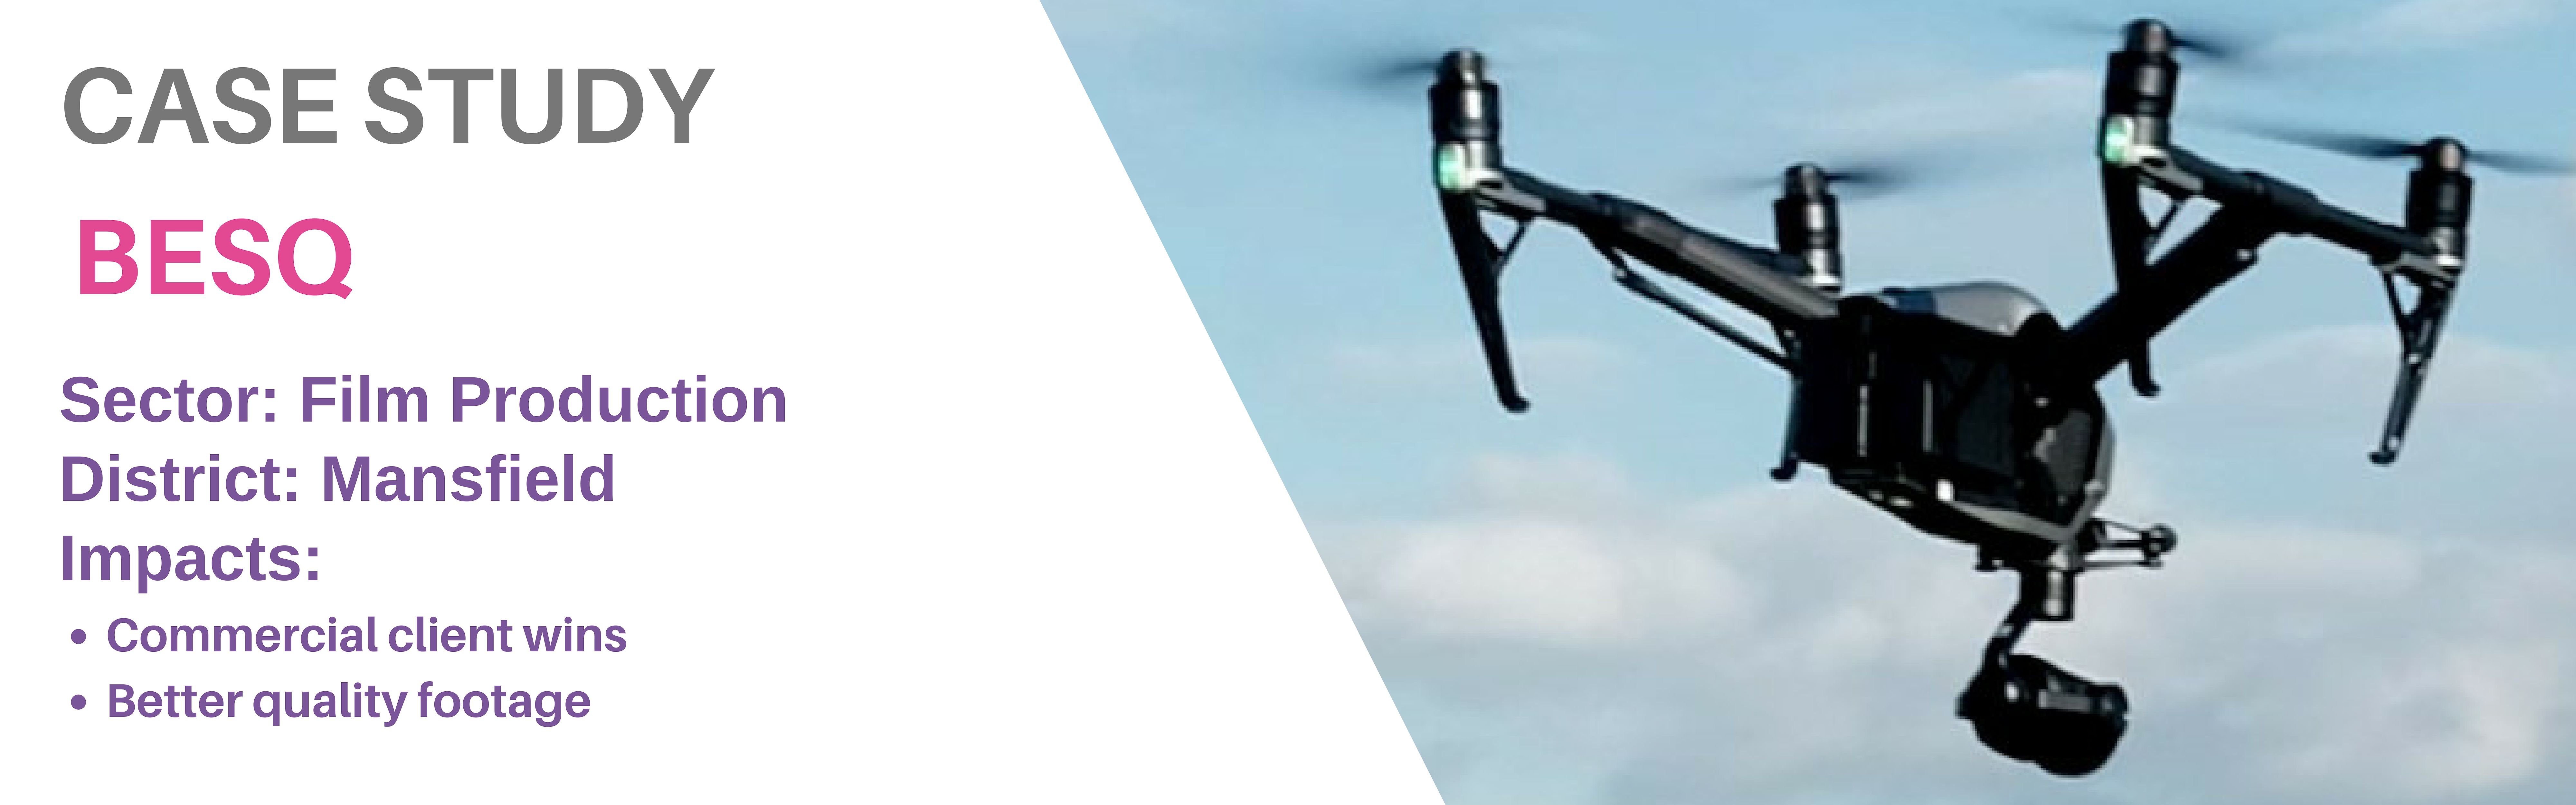 Case Study page banner BESQ drone